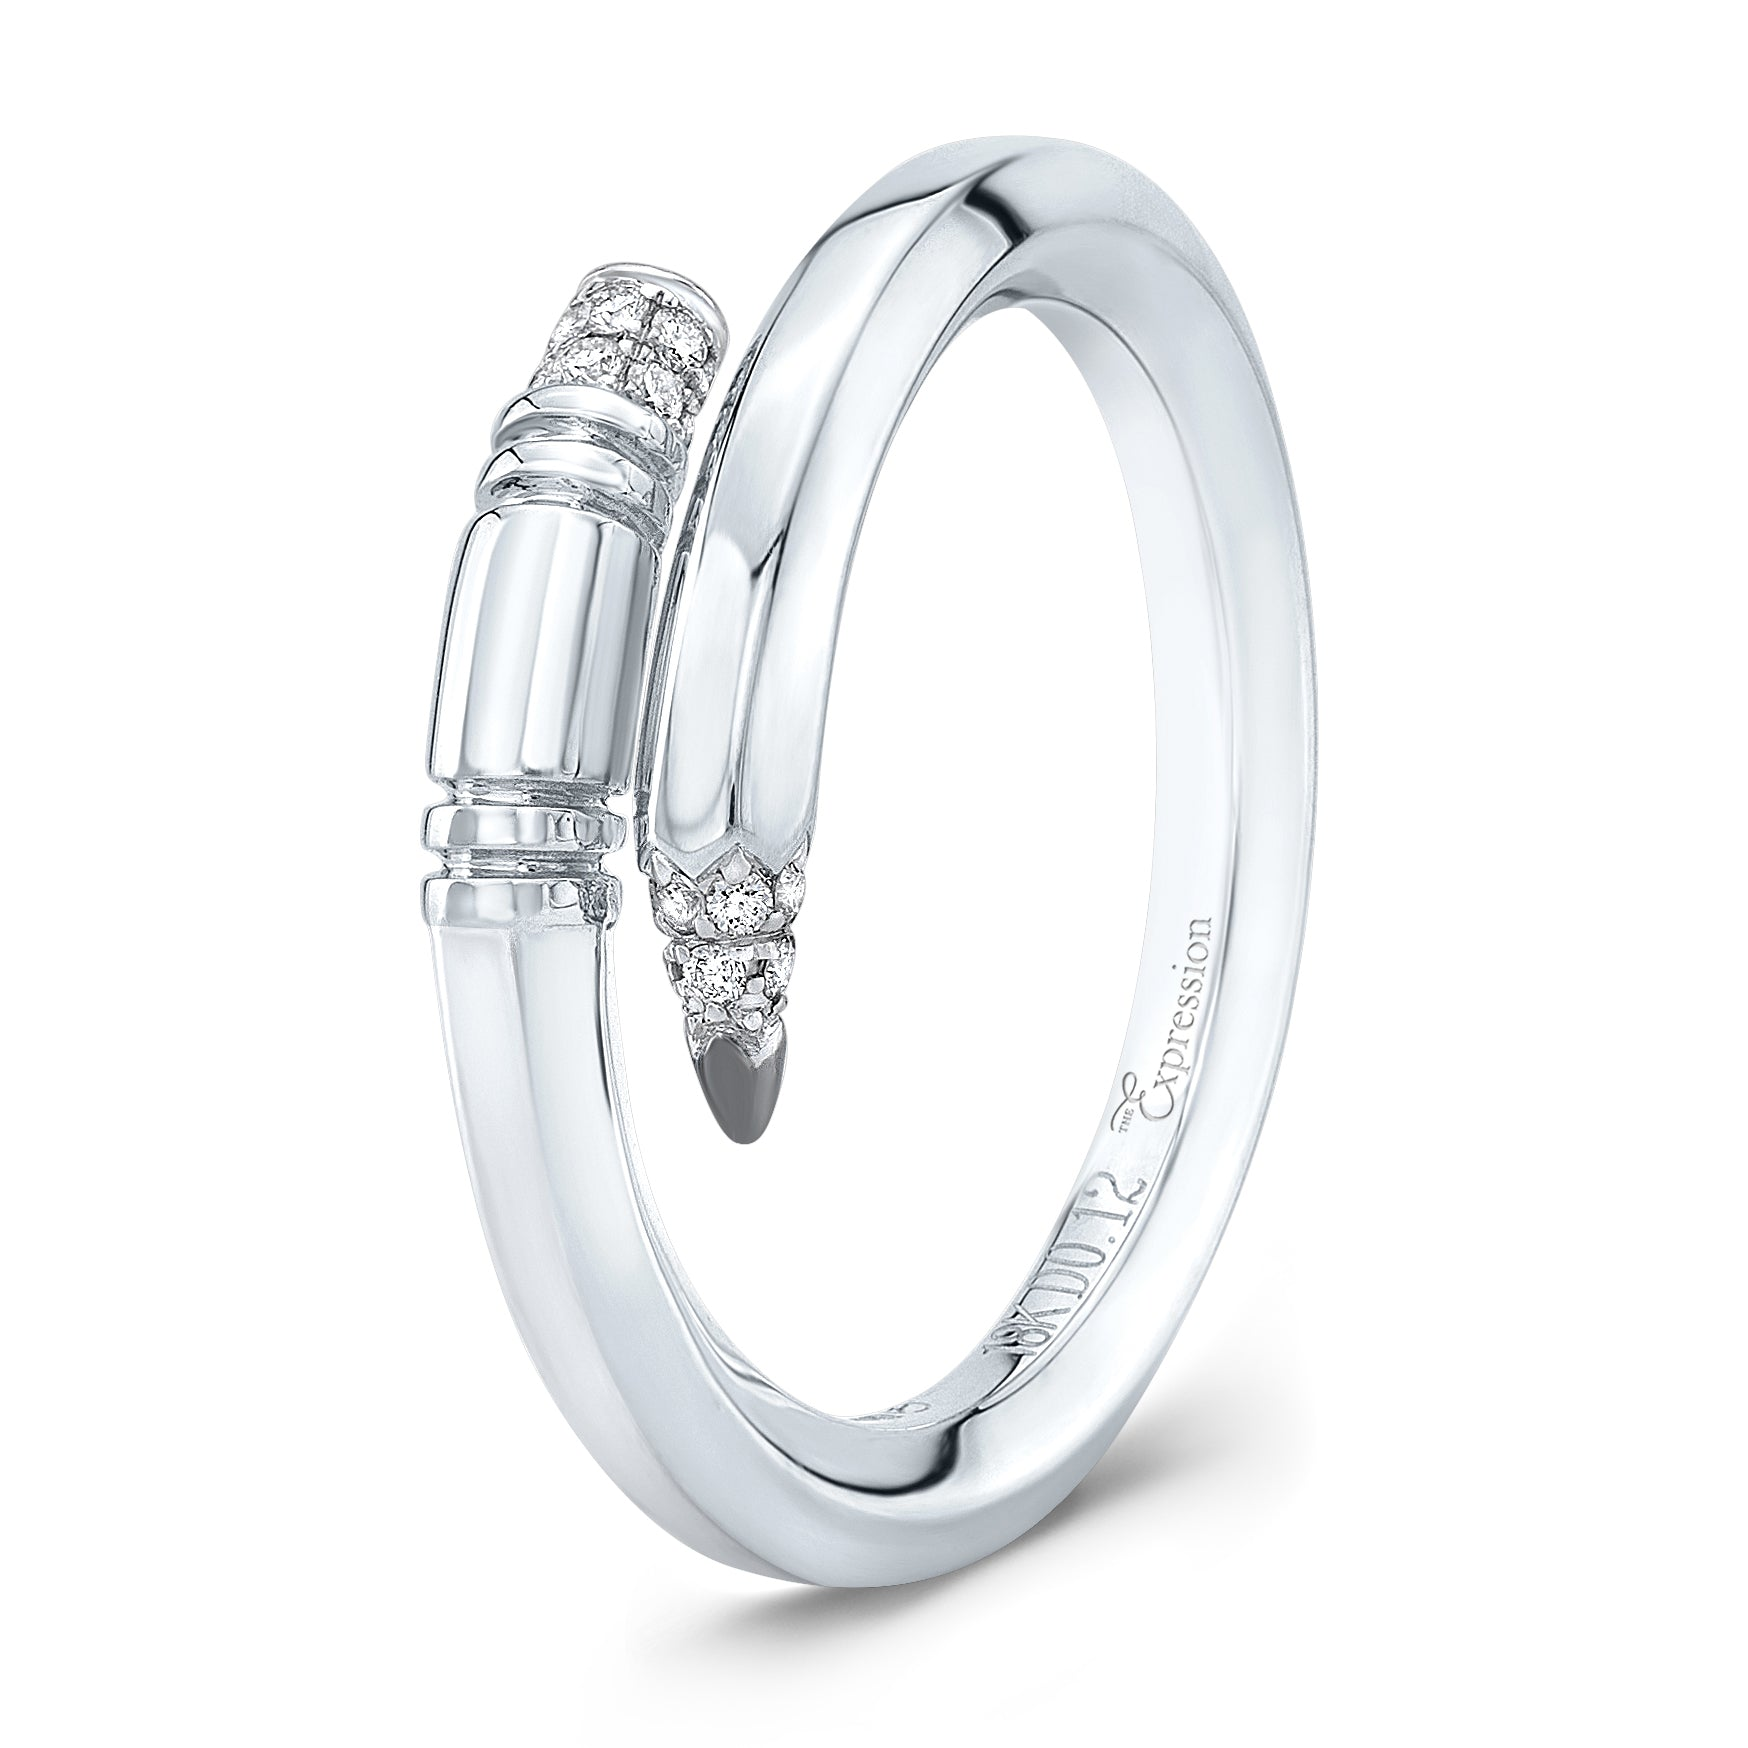 White Gold Small Gauge Ring